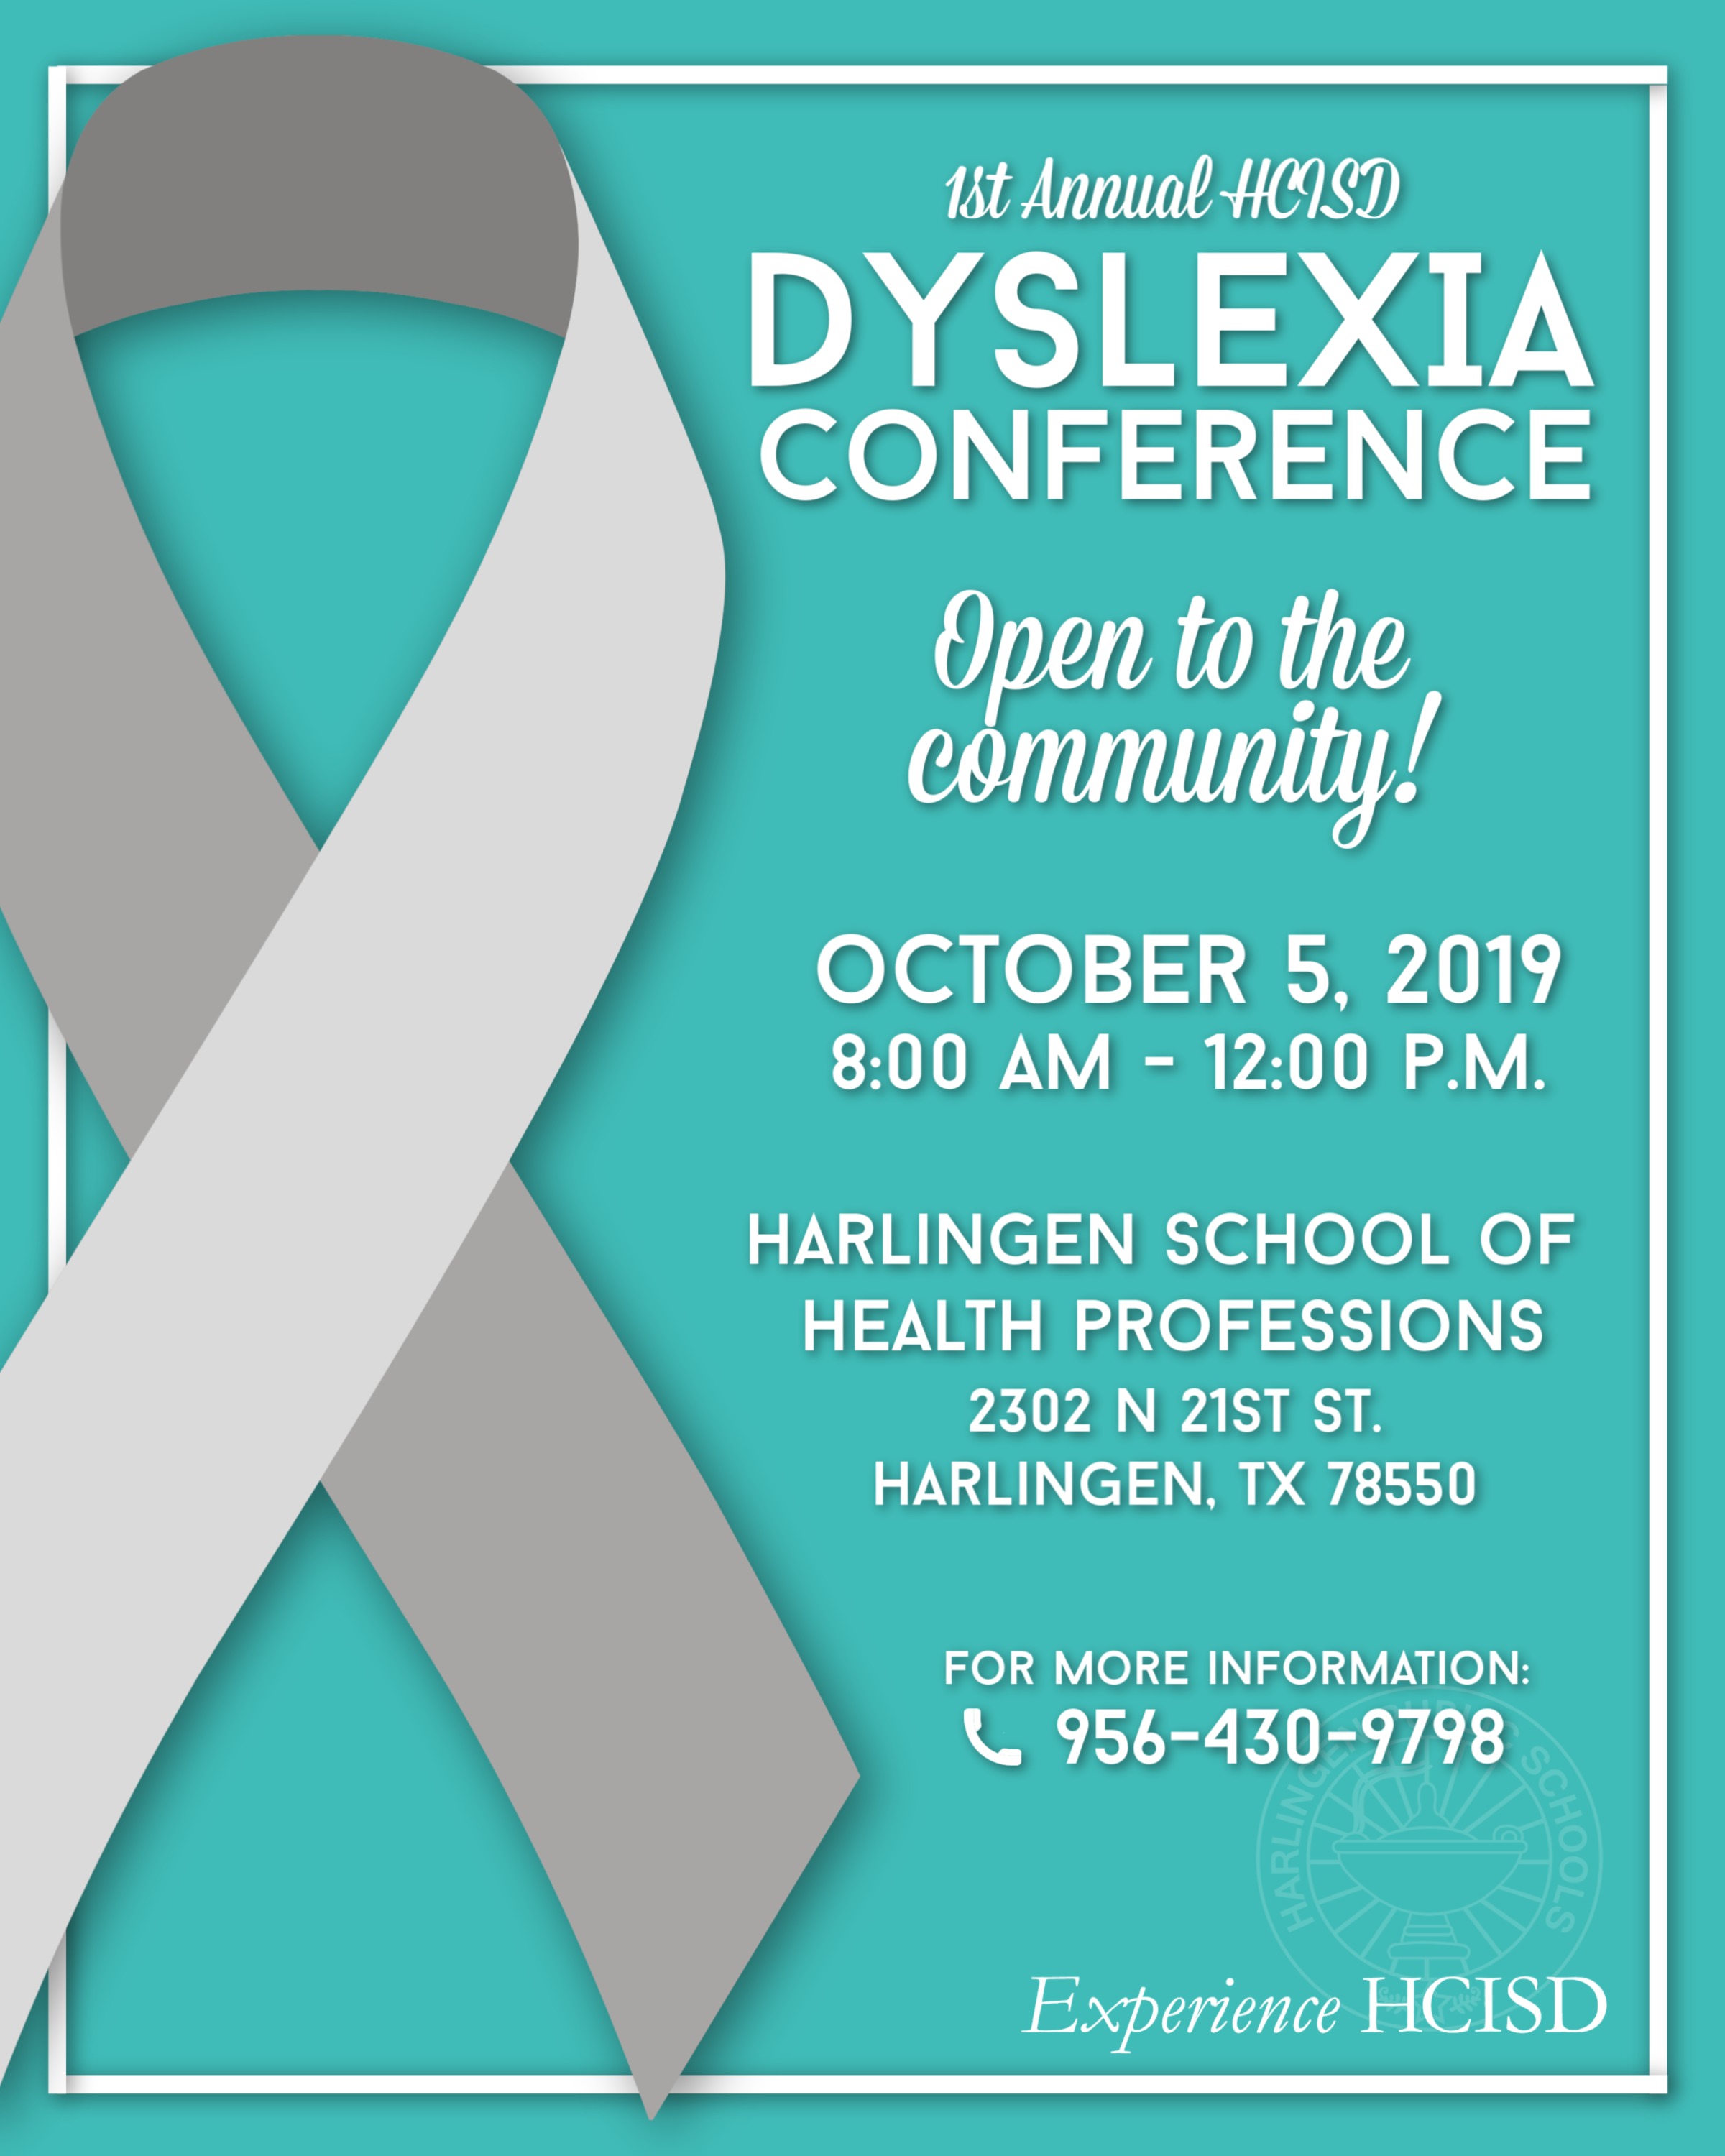 1st Annual Dyslexia Conference: Saturday, October 5, 2019